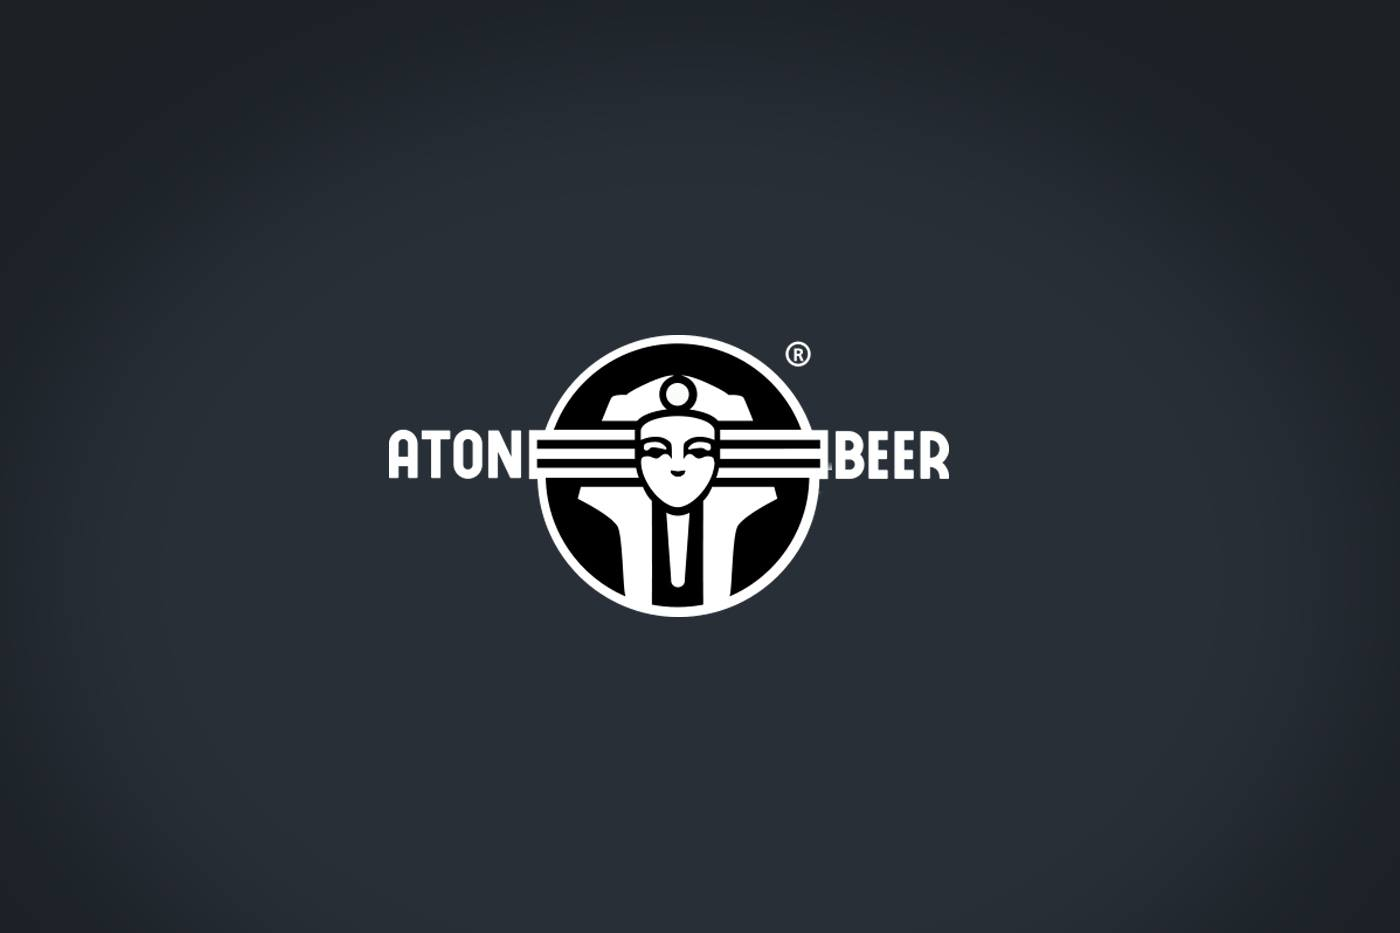 Aton Beer